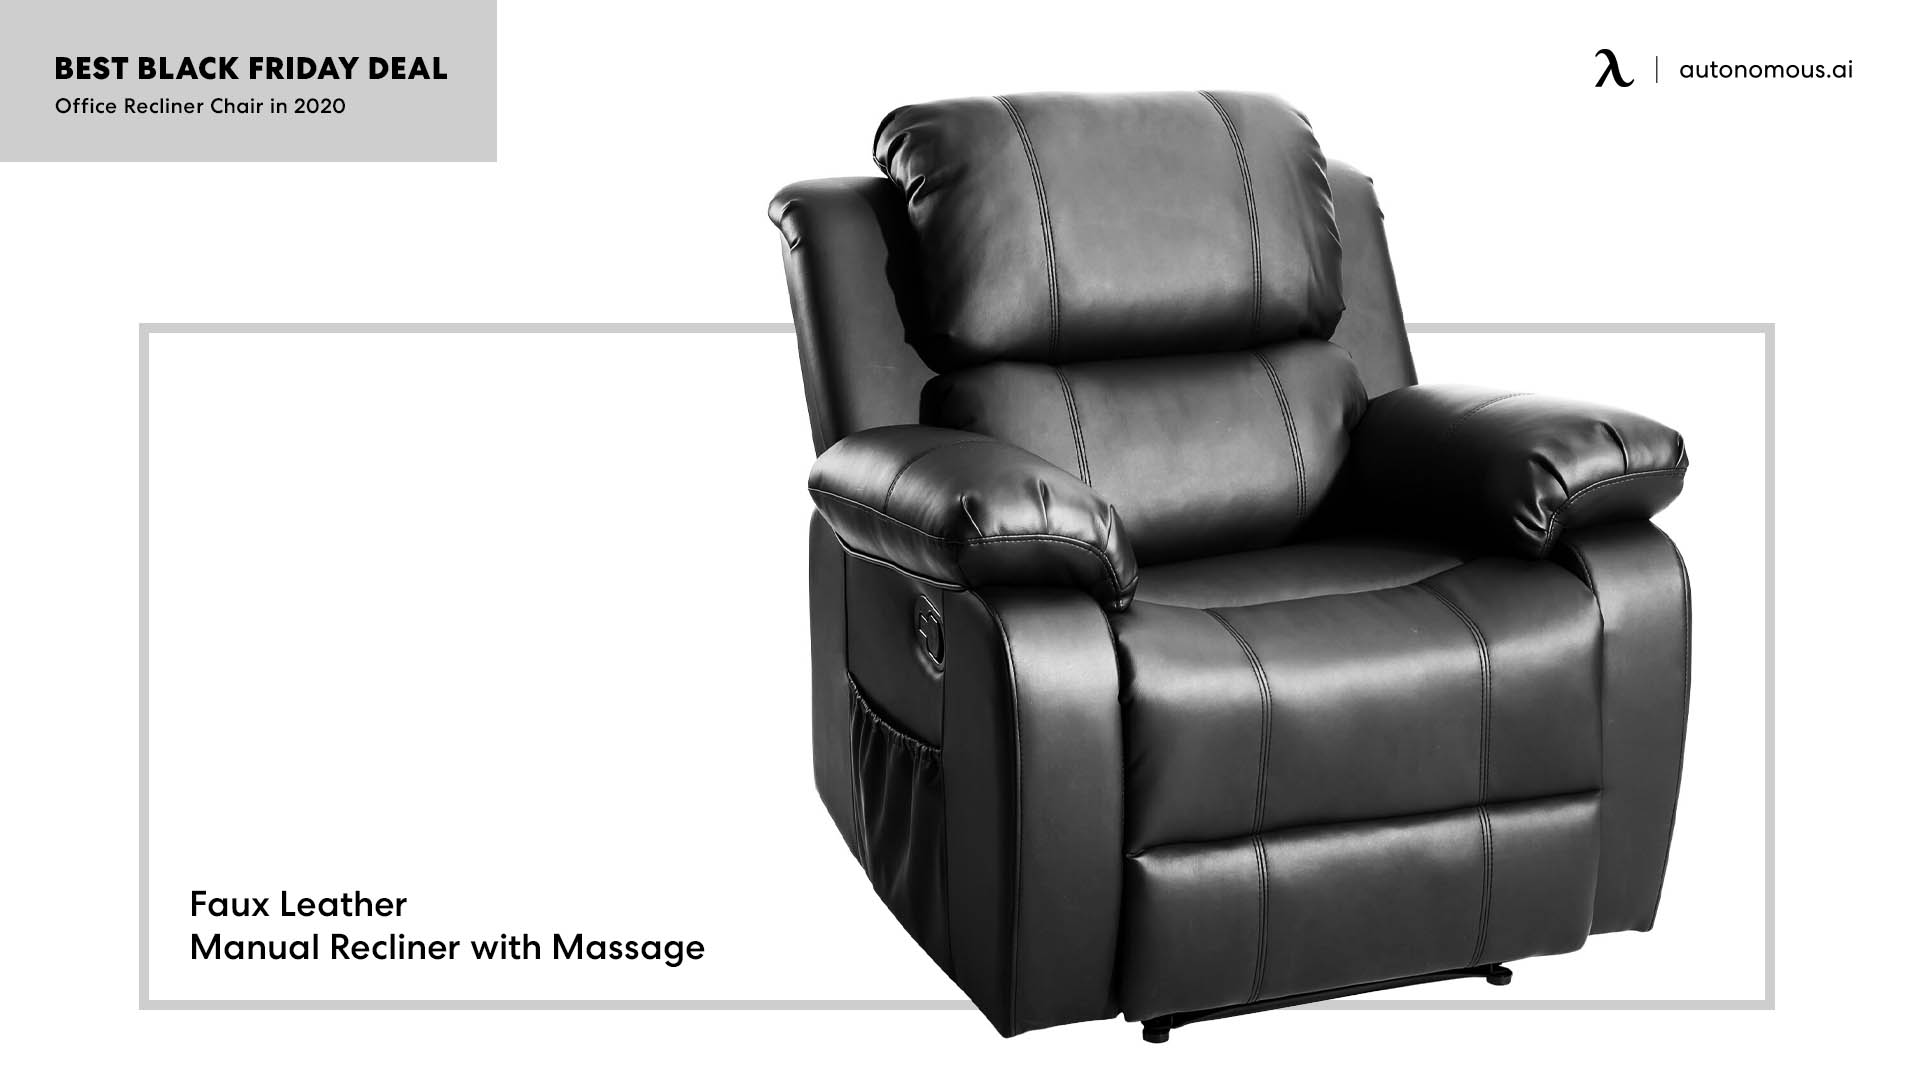 Faux Leather Manual Recliner with Massage